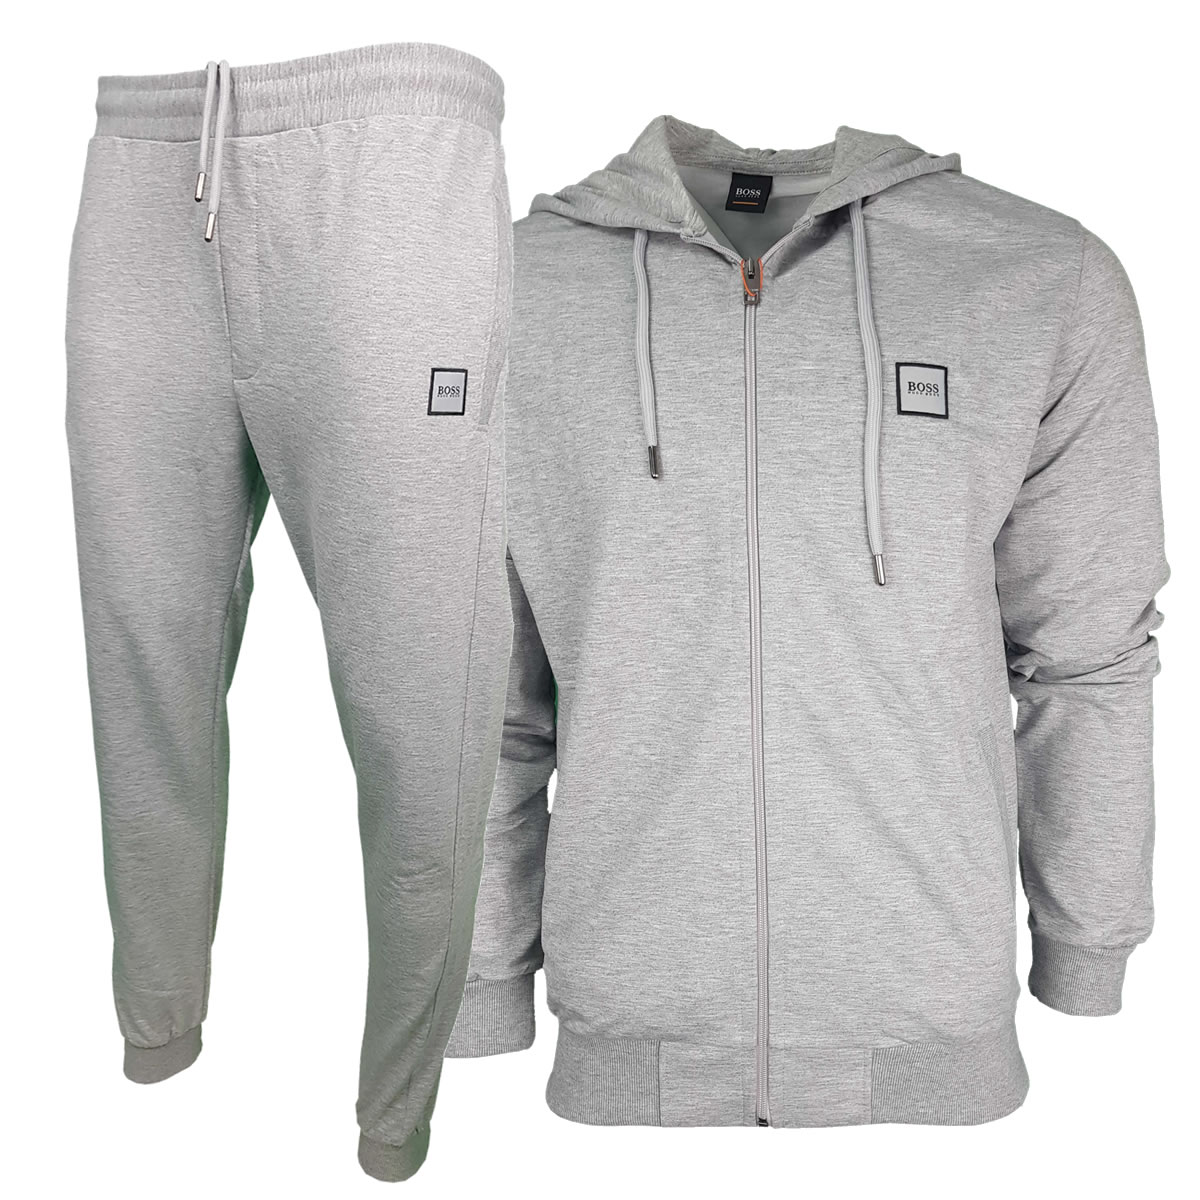 a1da2a74b Hugo Boss Pavlik Tracksuit Top Jacket & Bottoms with Contrast Logo in Light  Grey